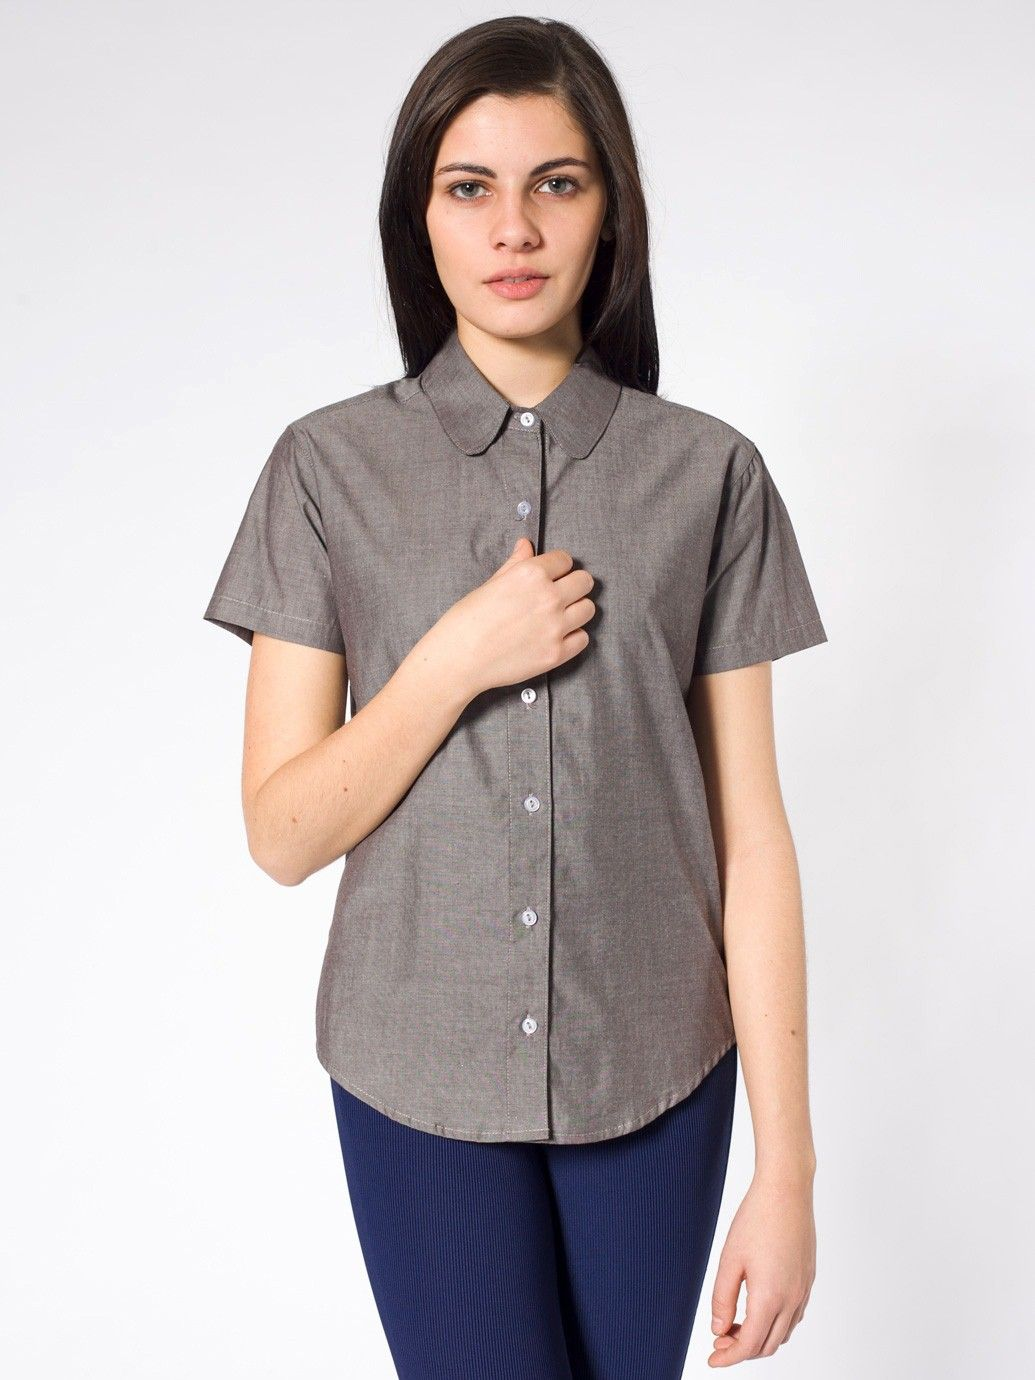 Chambray Round Collar Short Sleeve Button Up Shirt Short Sleeves